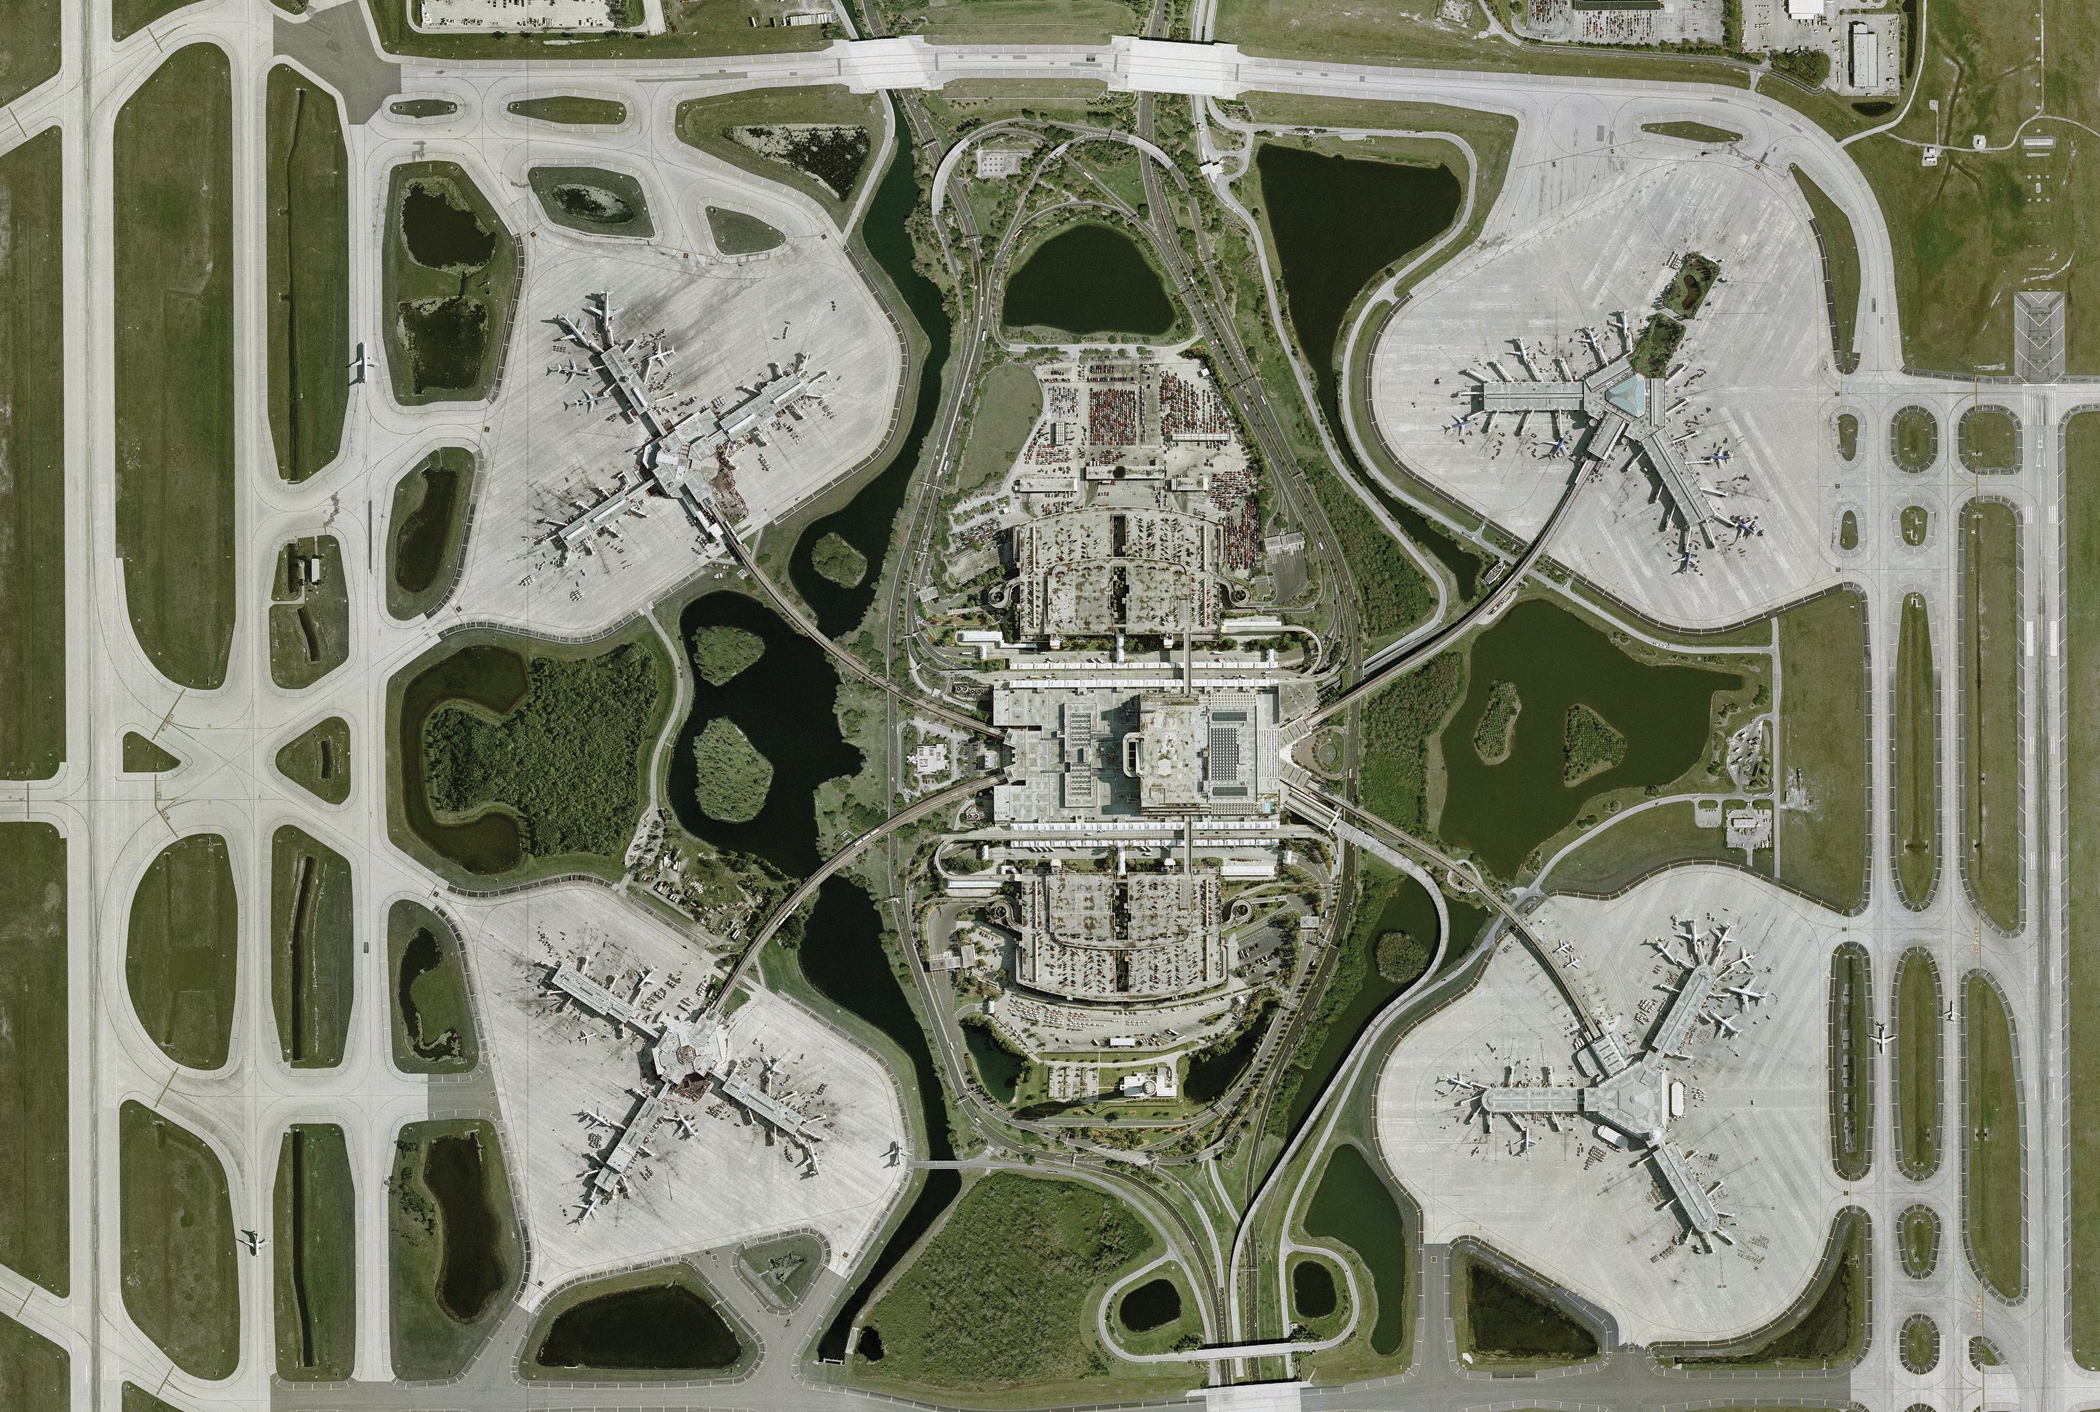 Aerial View of Terminals